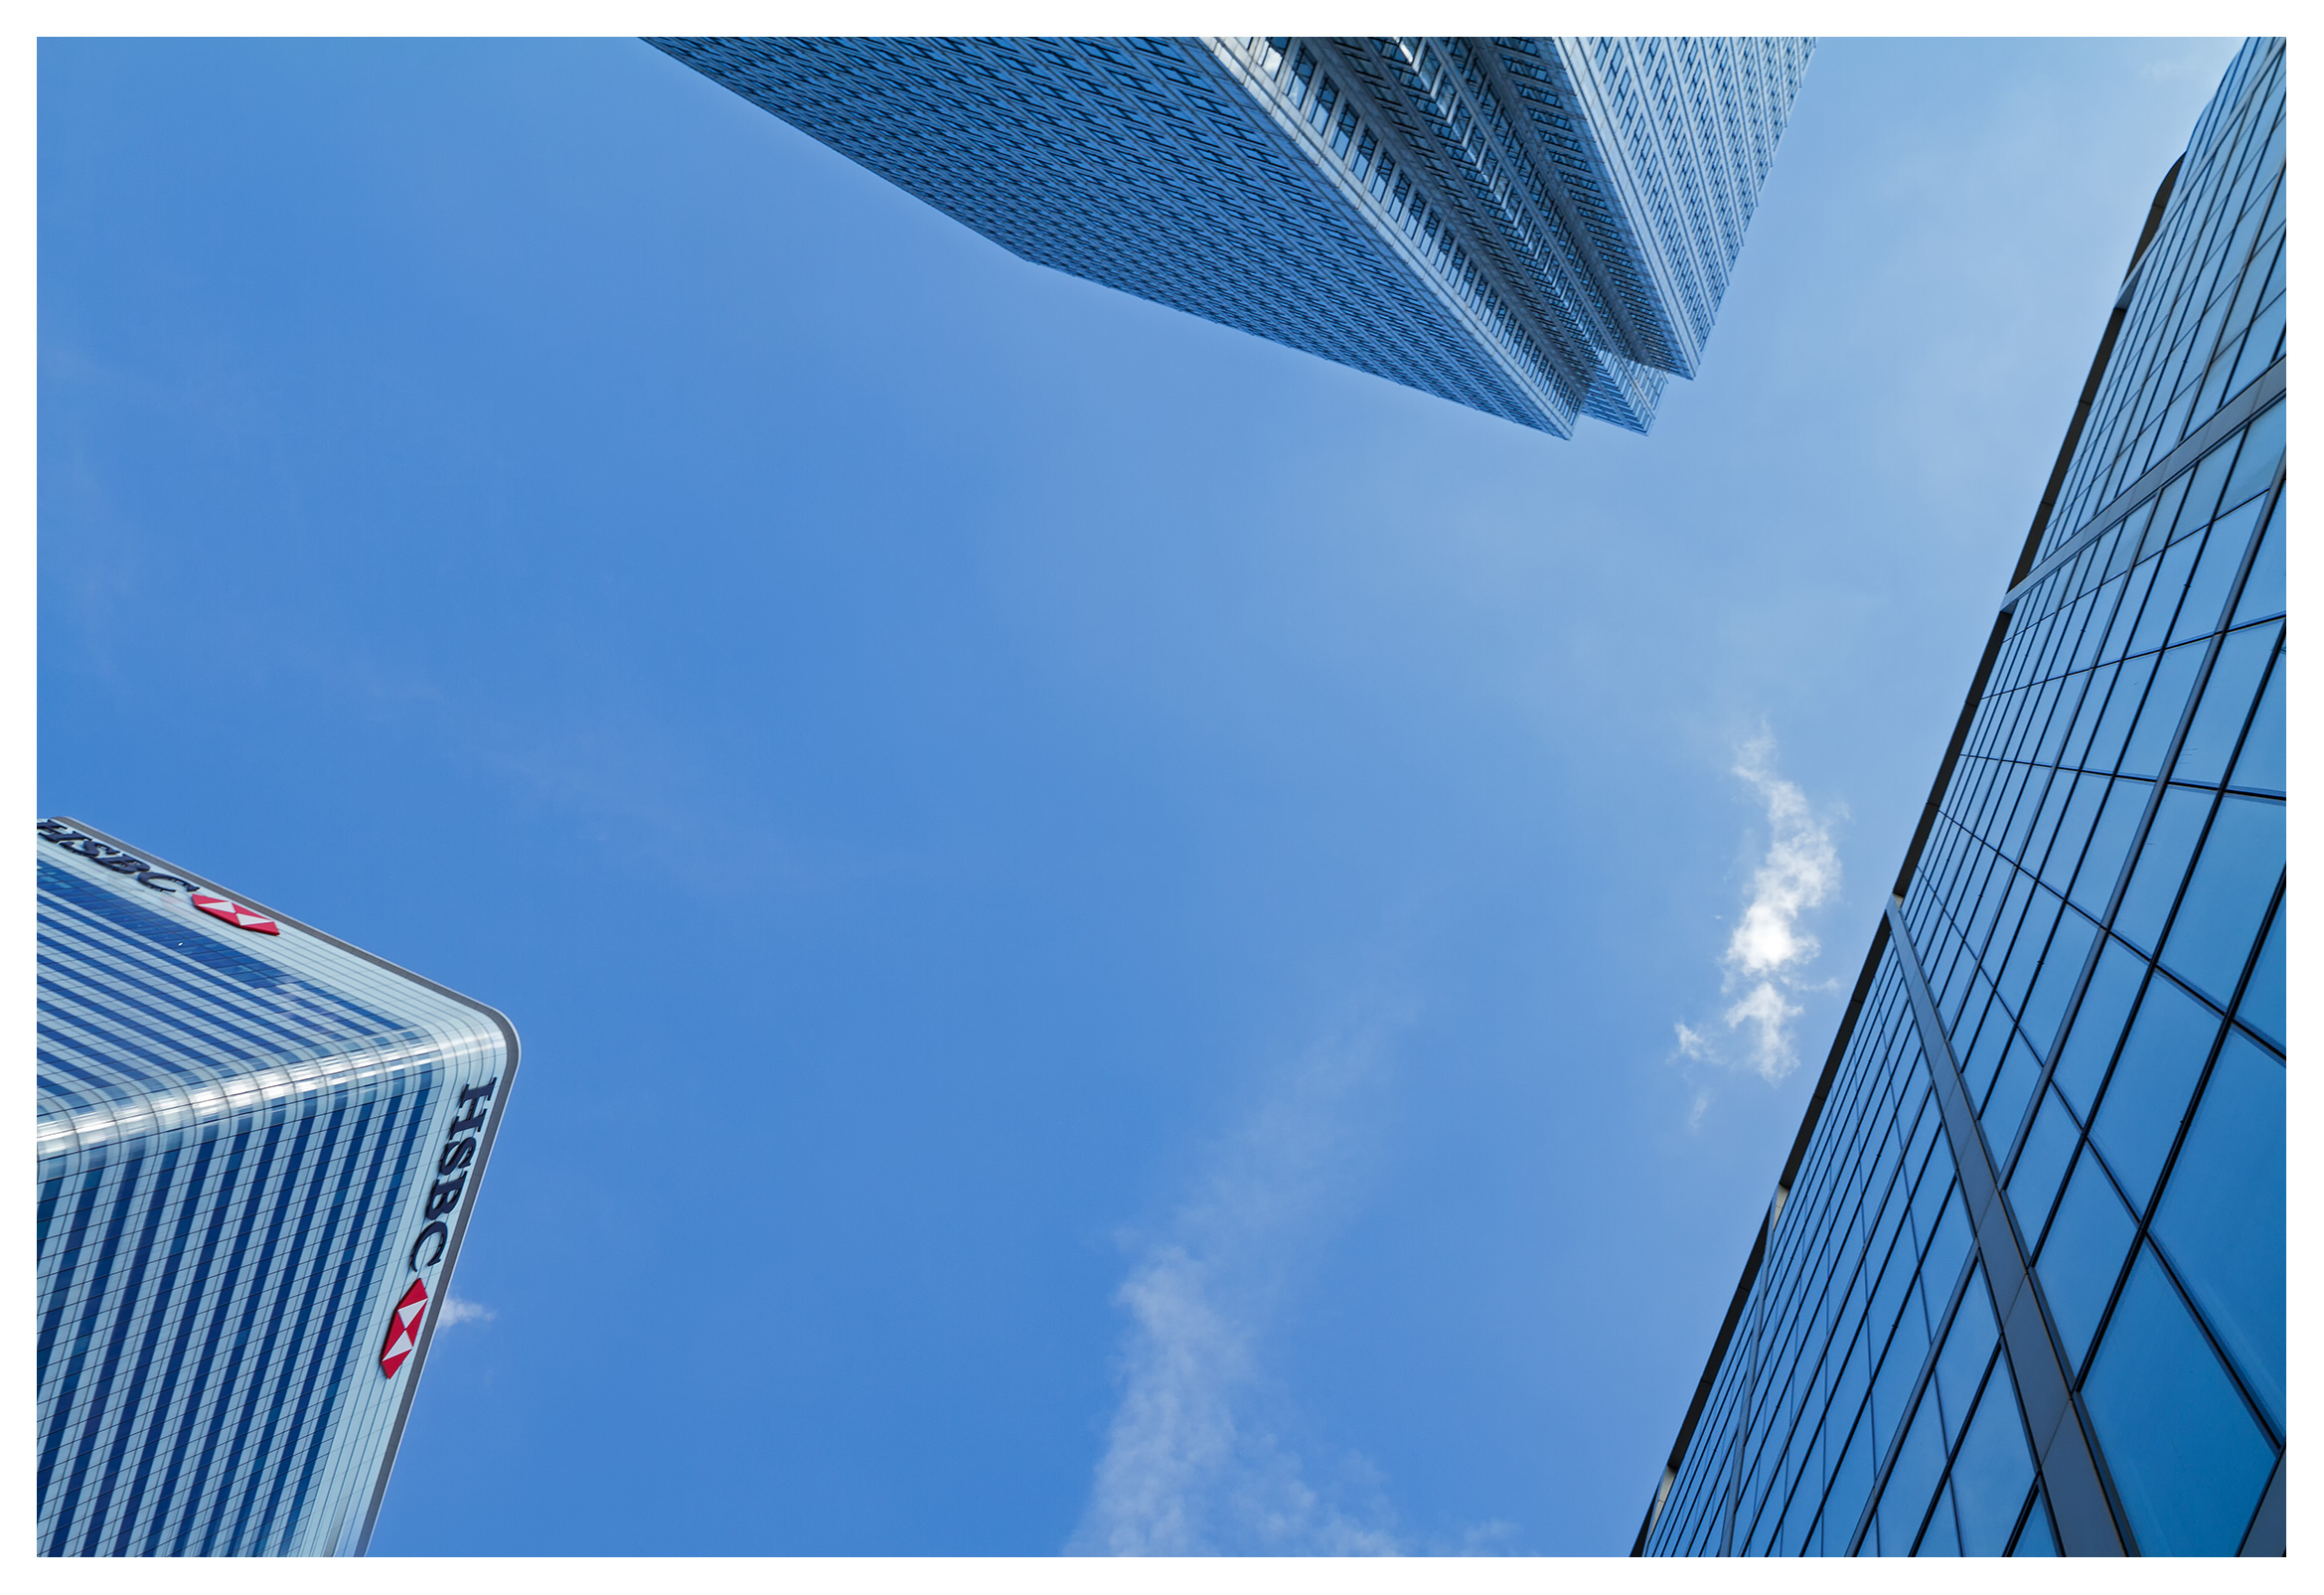 London commercial photography, Abstract business concept 'reach for the sky', Modern office buildings reaching up to a blue sky with a small white cloud overhead